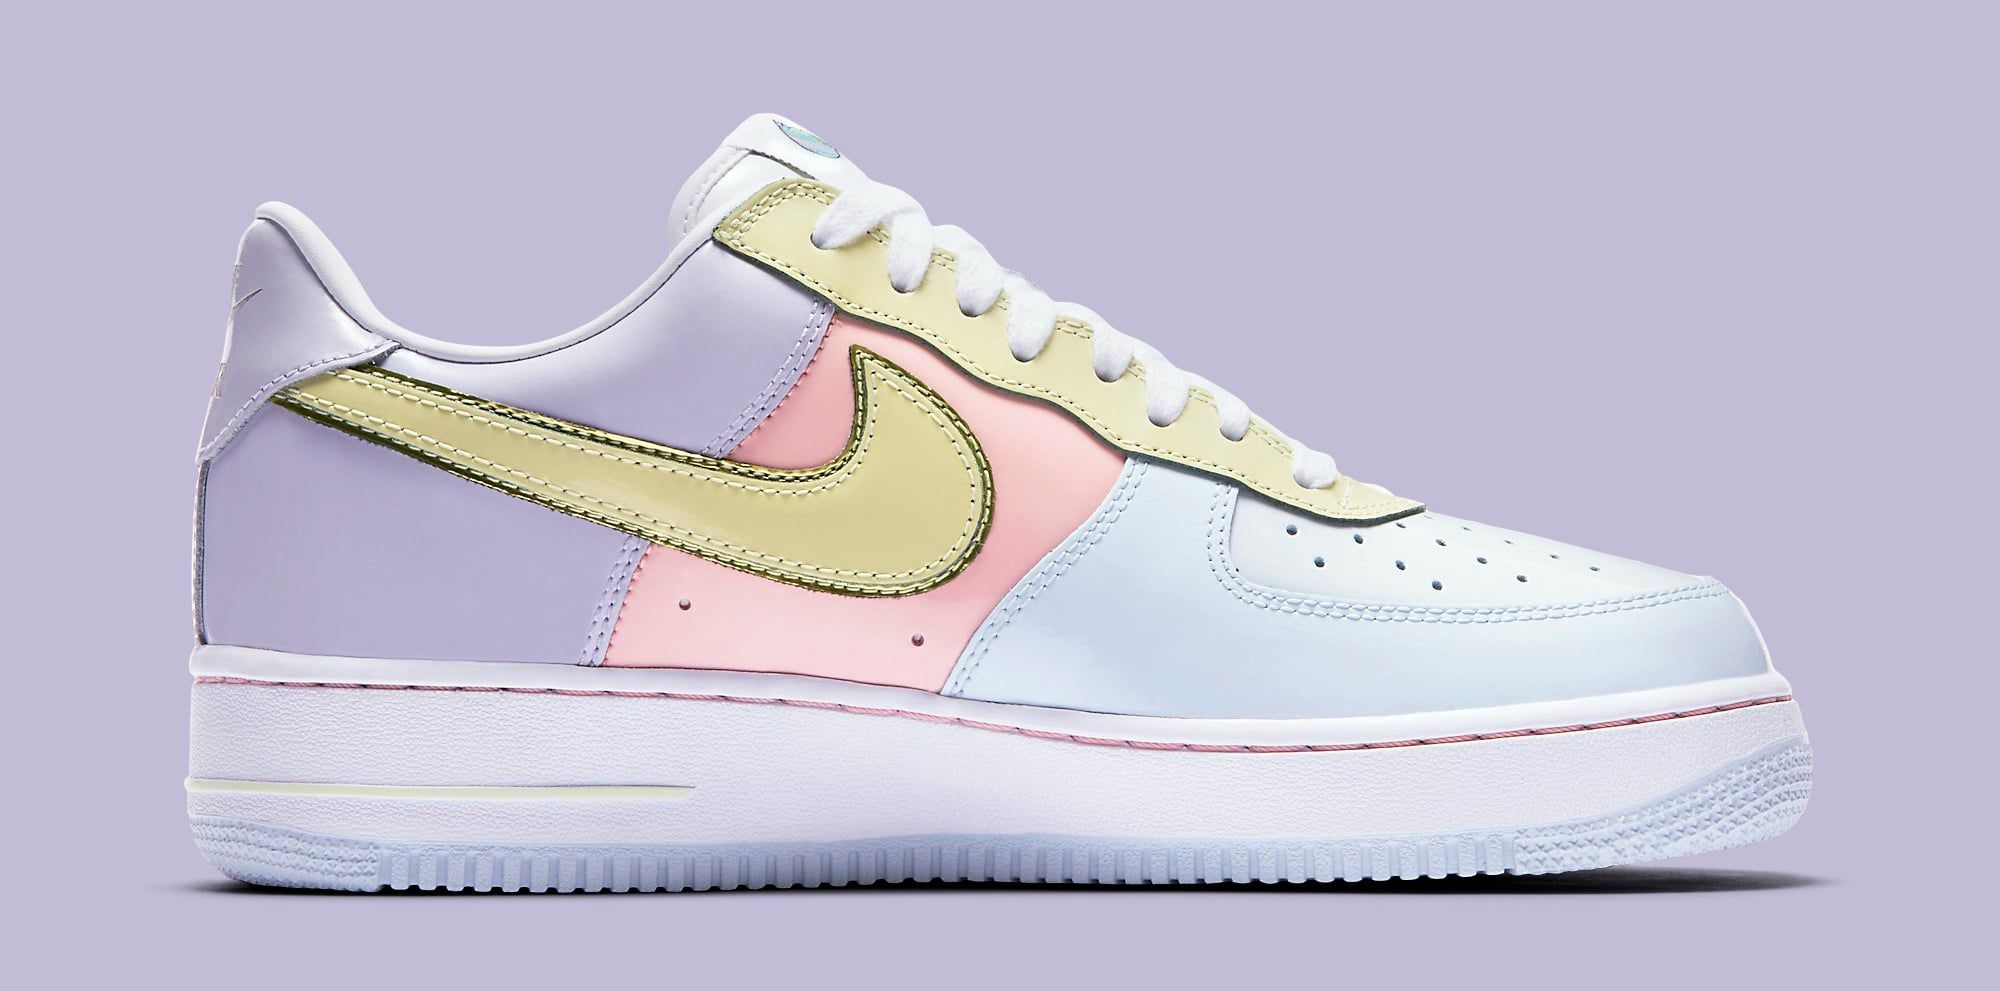 Easter Egg' Nike Air Force 1s Return — Complex in 2019